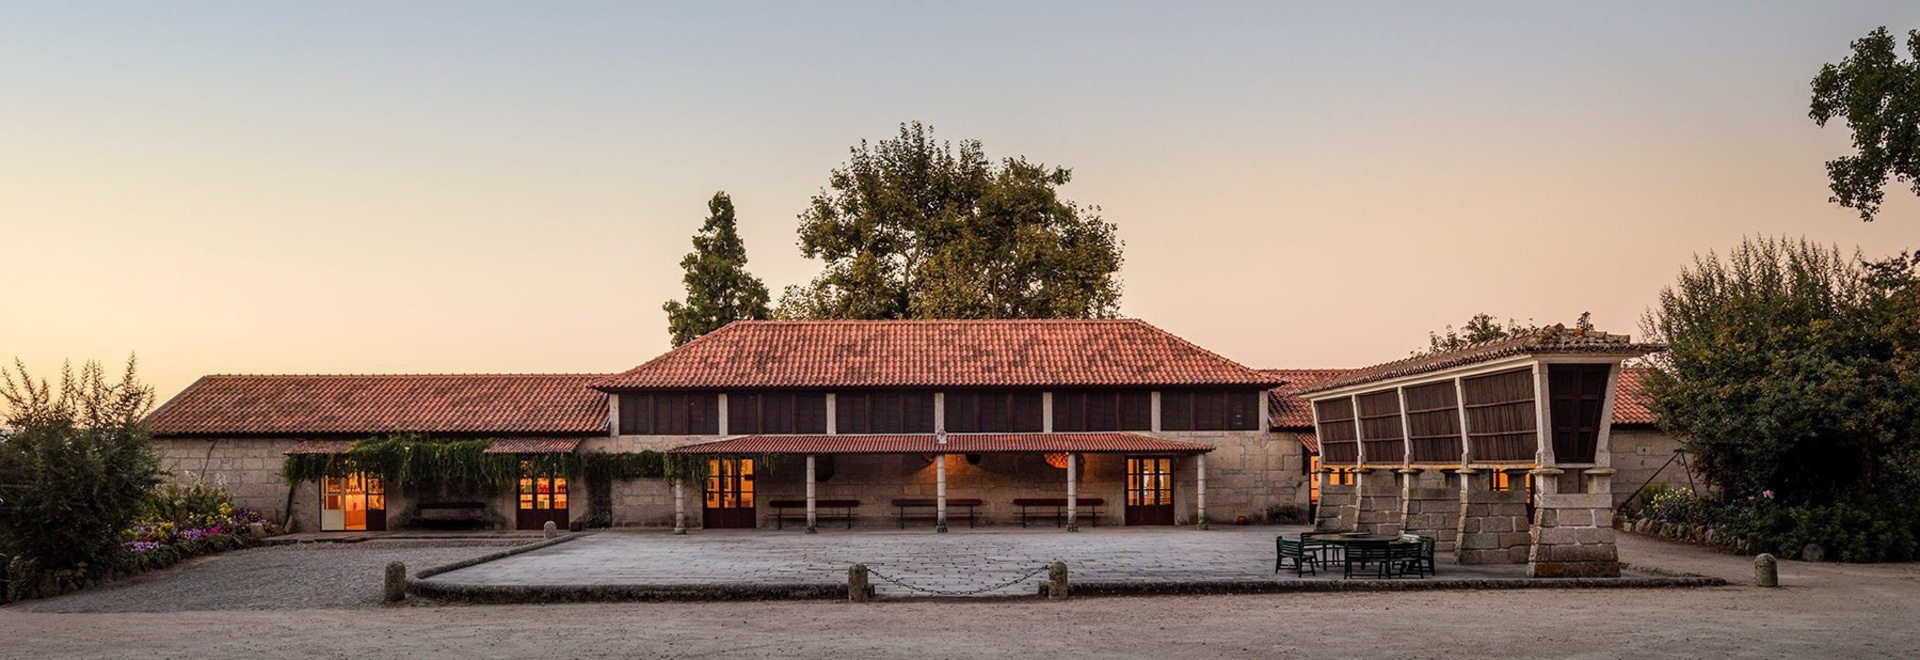 diogo aguiar studio converts disused barn into winery in pastoral northern portugal